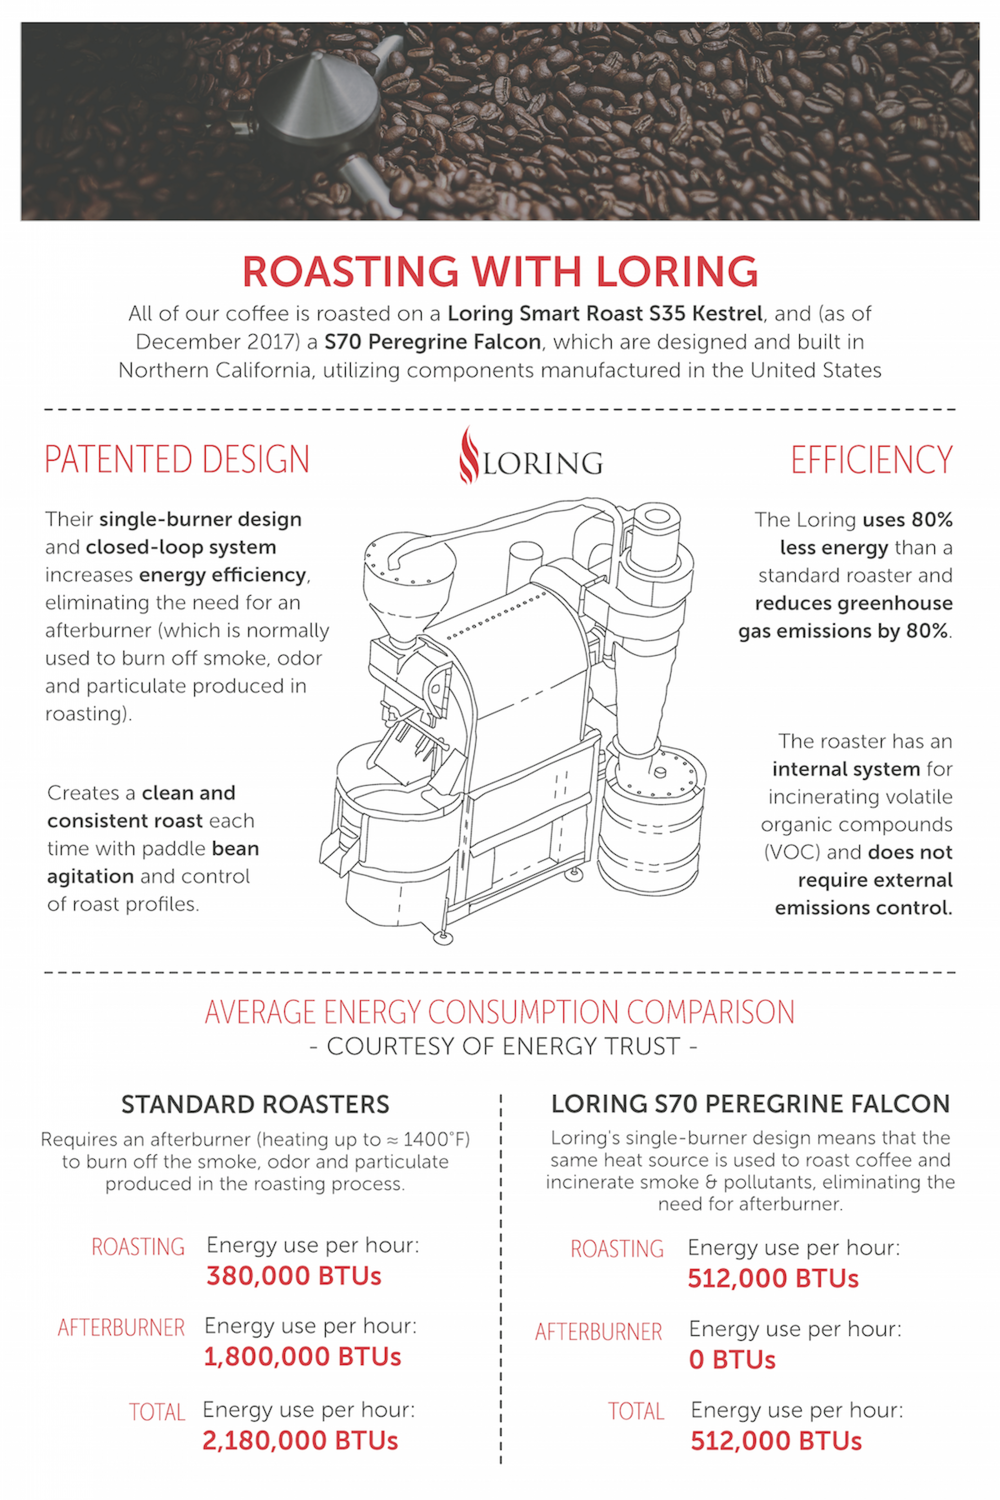 Information about our energy-efficient Loring Smart Roast coffee roasters